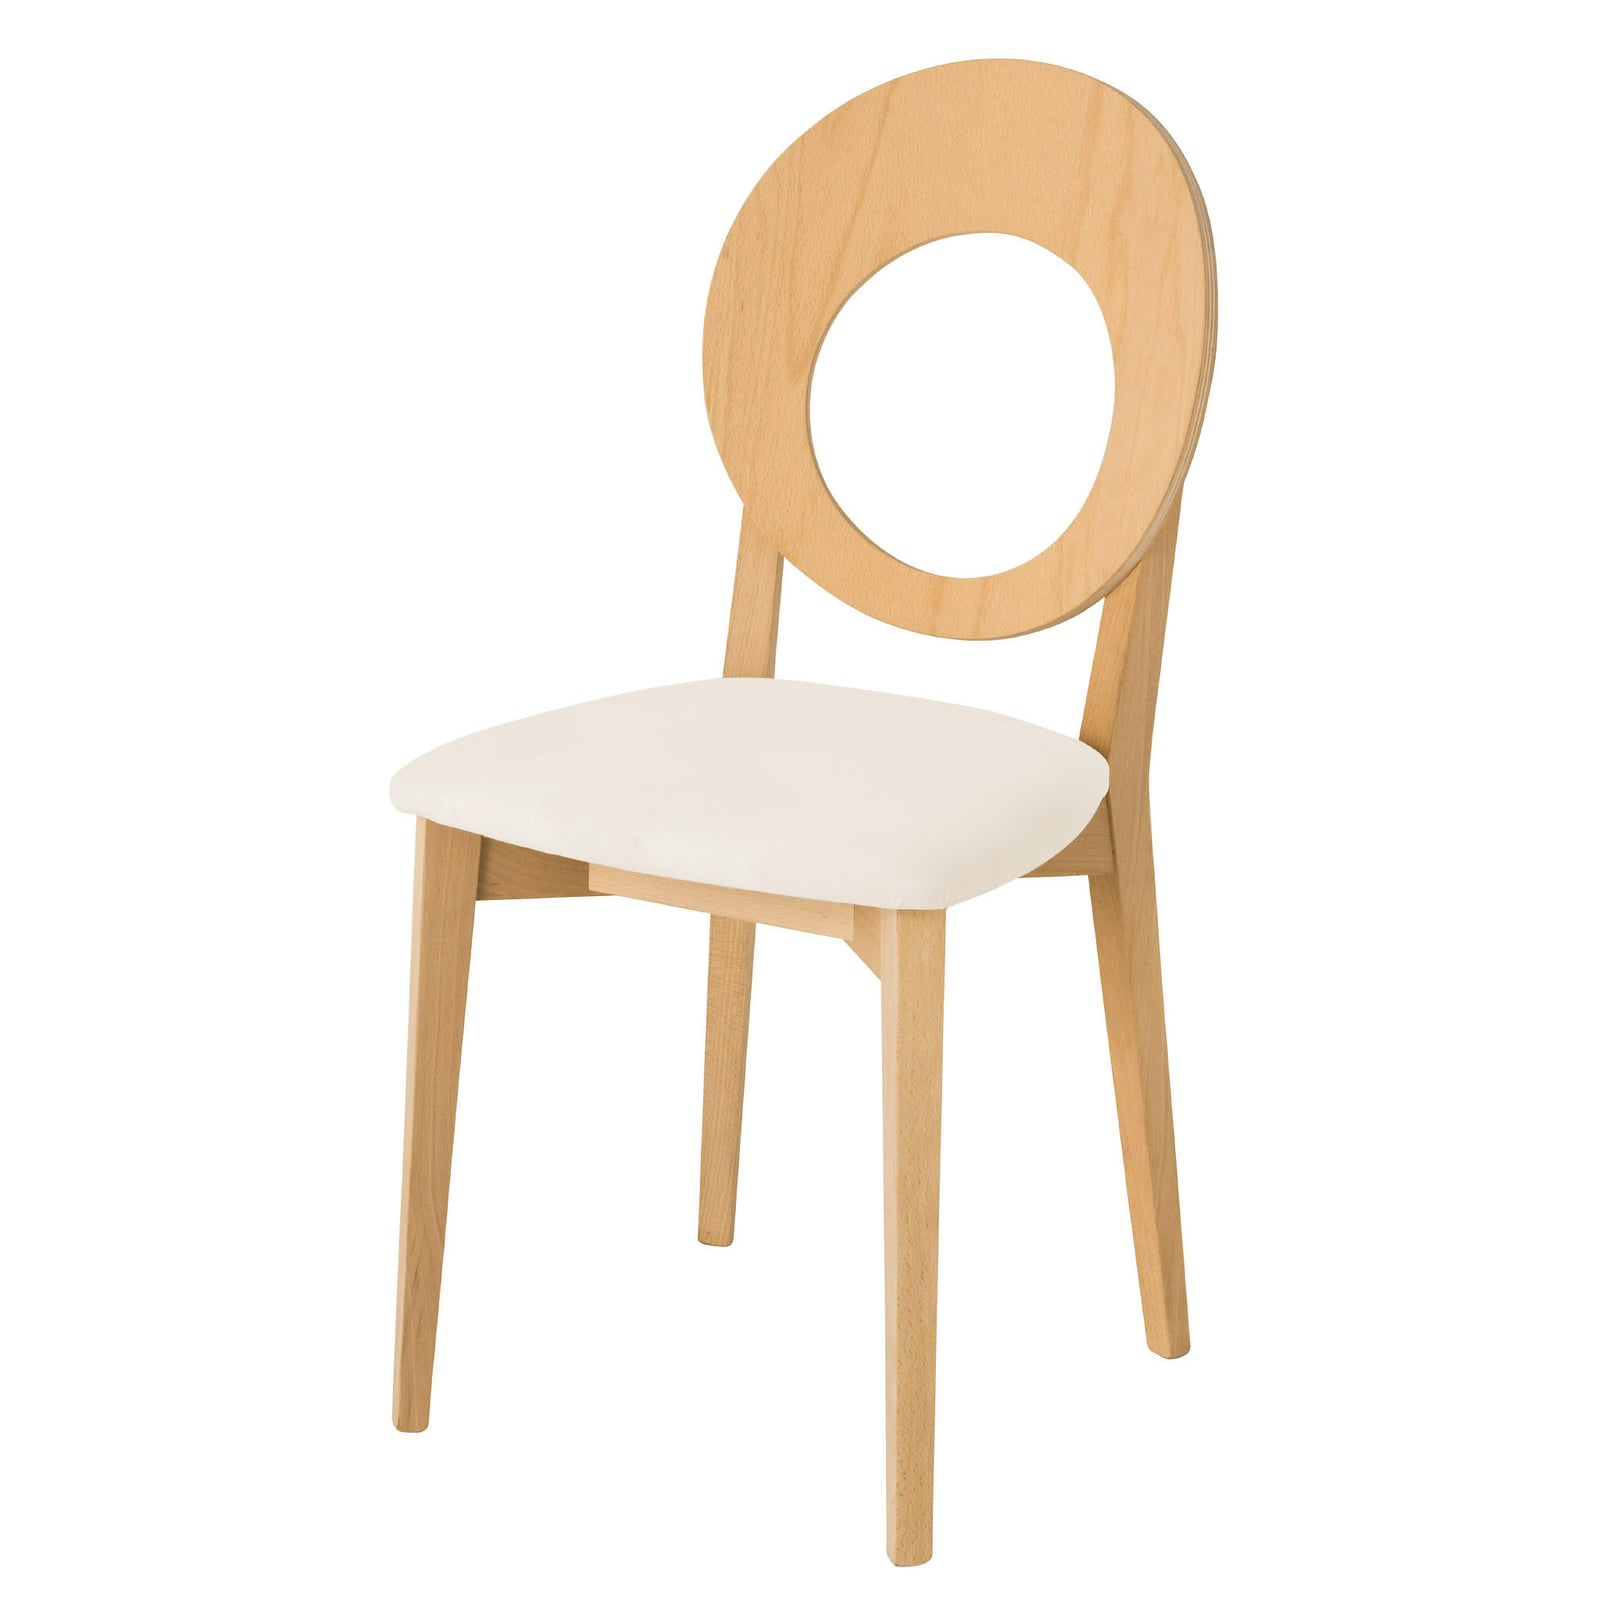 Chloe dining chair with untreated wood finish and plain seat fabric.